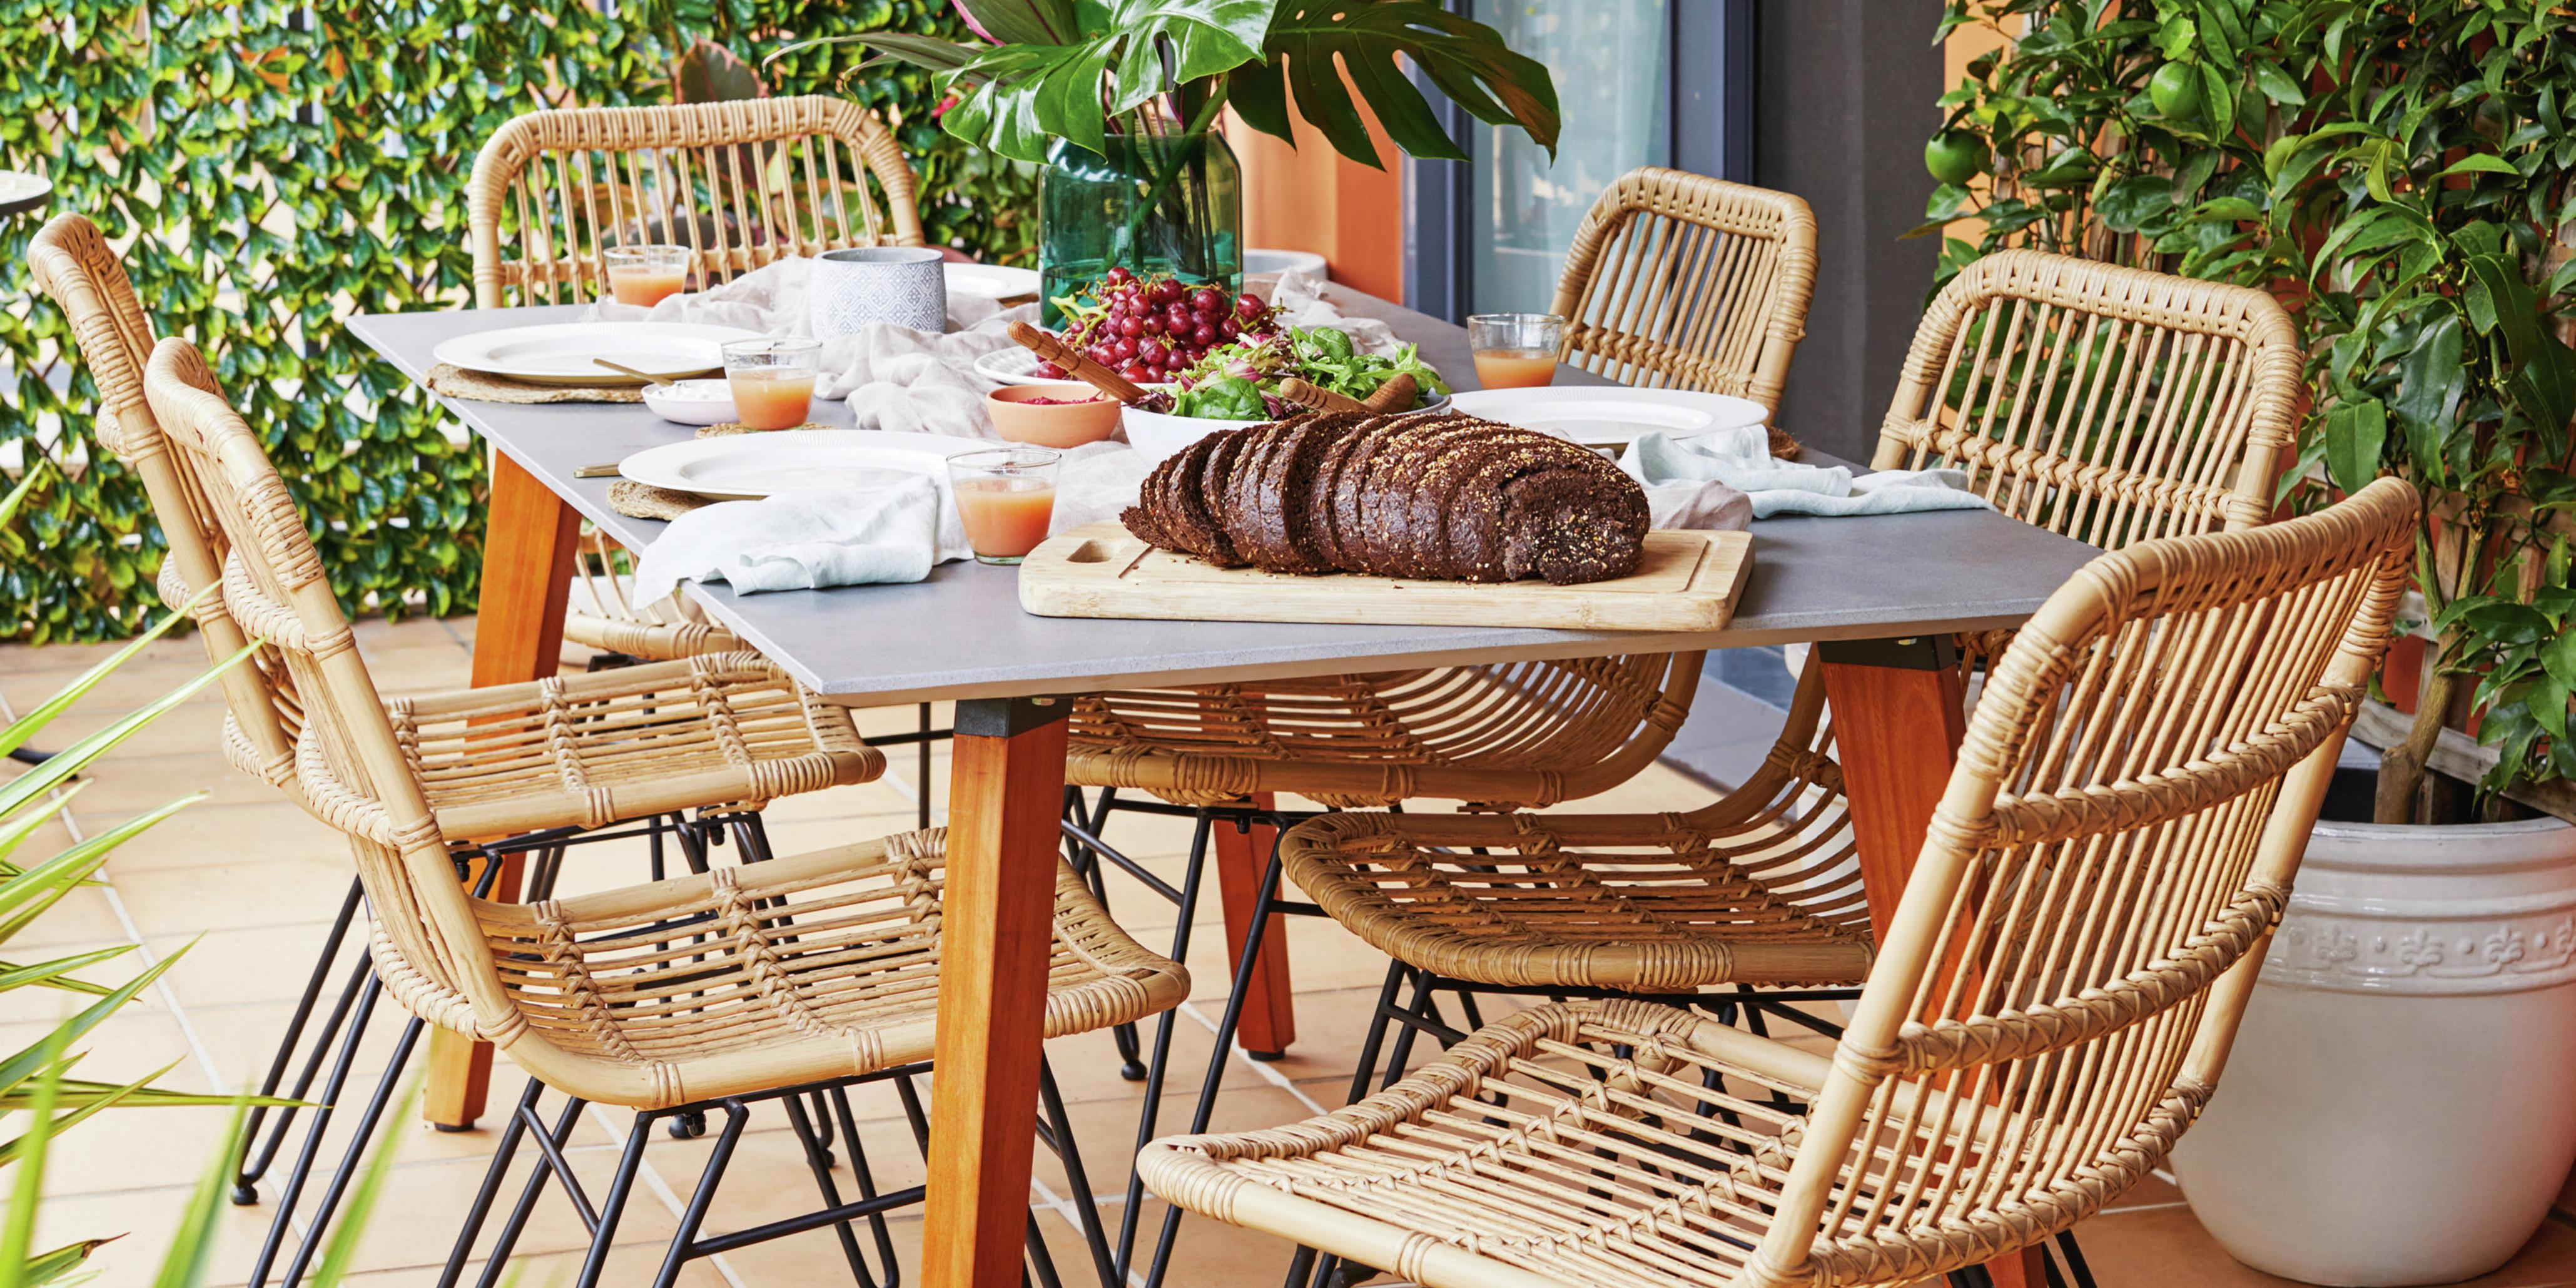 Outdoor dining area with dining table, chairs and potted plants